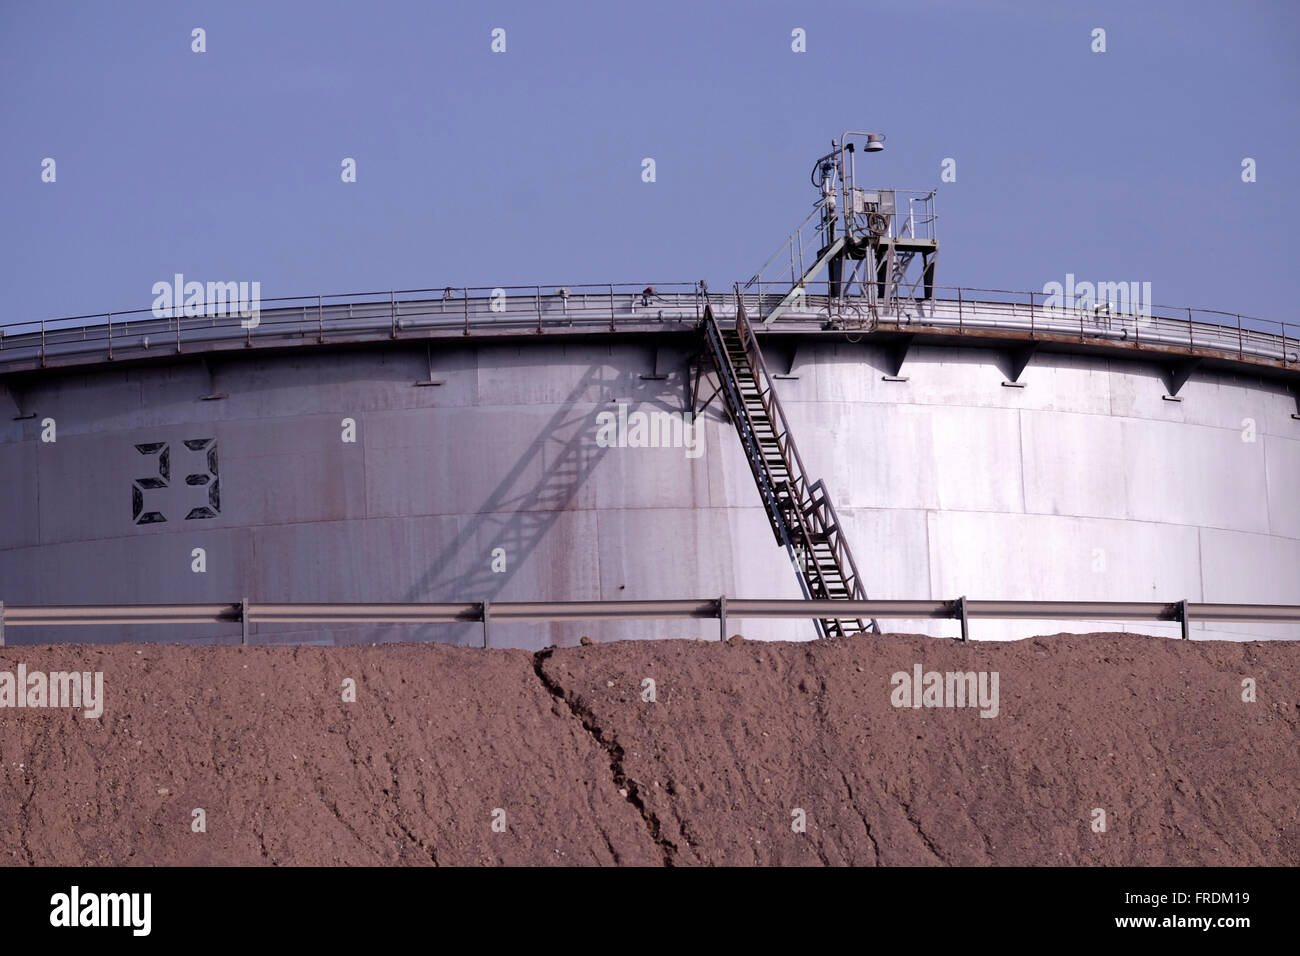 An oil storage tank of the Eilat Ashkelon Pipeline Company (EAPC) which operates the Eilat Ashkelon petroleum Pipeline - Stock Image